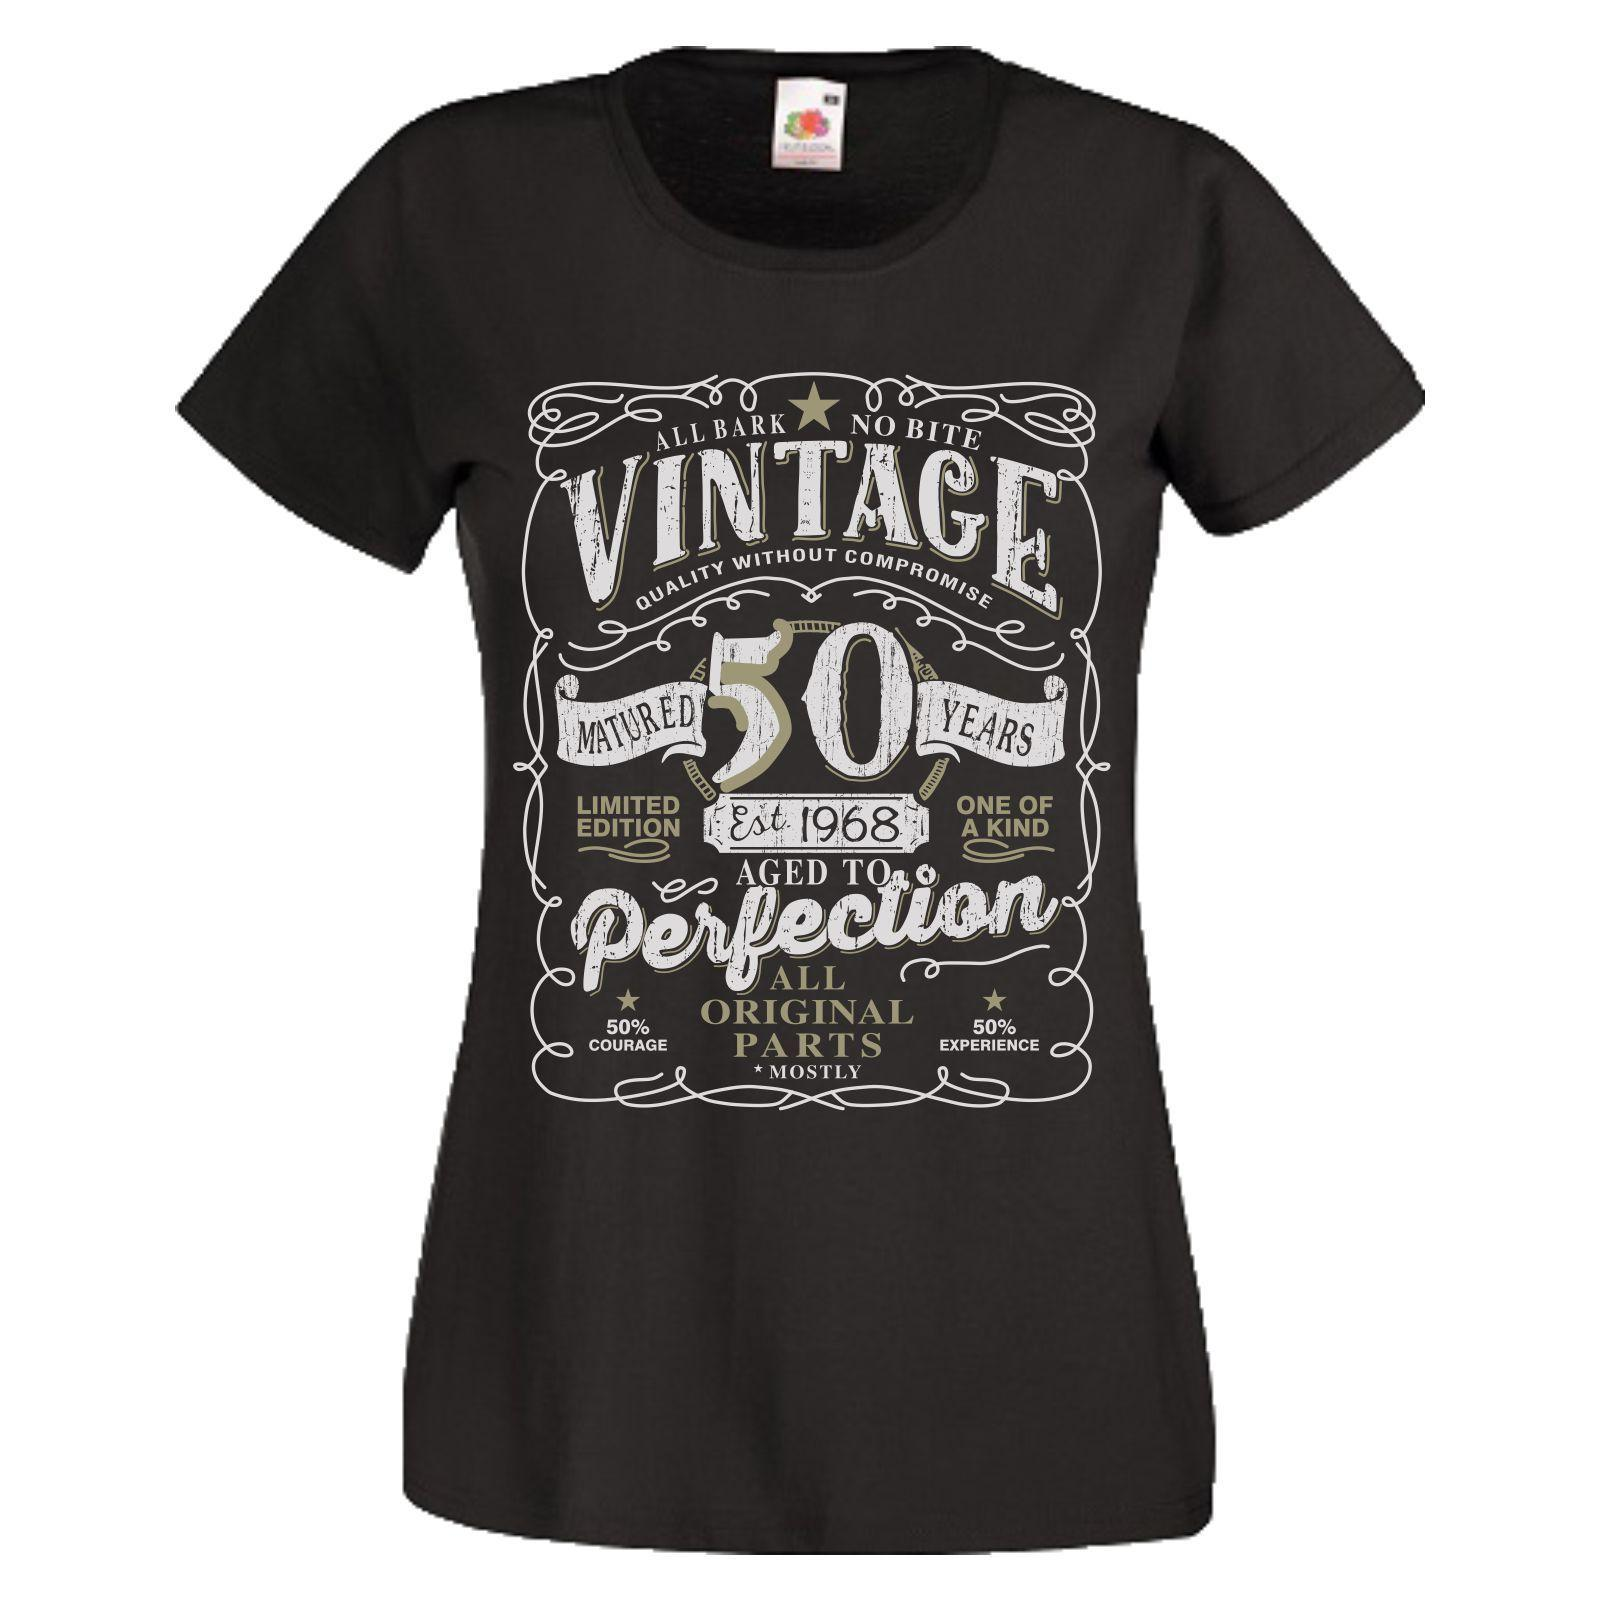 50th Birthday Gift T Shirt Vintage 1968 Original Parts 50 Years Mens Women TopFunny Unisex Casual Tshirt Top Comedy Humorous From Mvptshirt